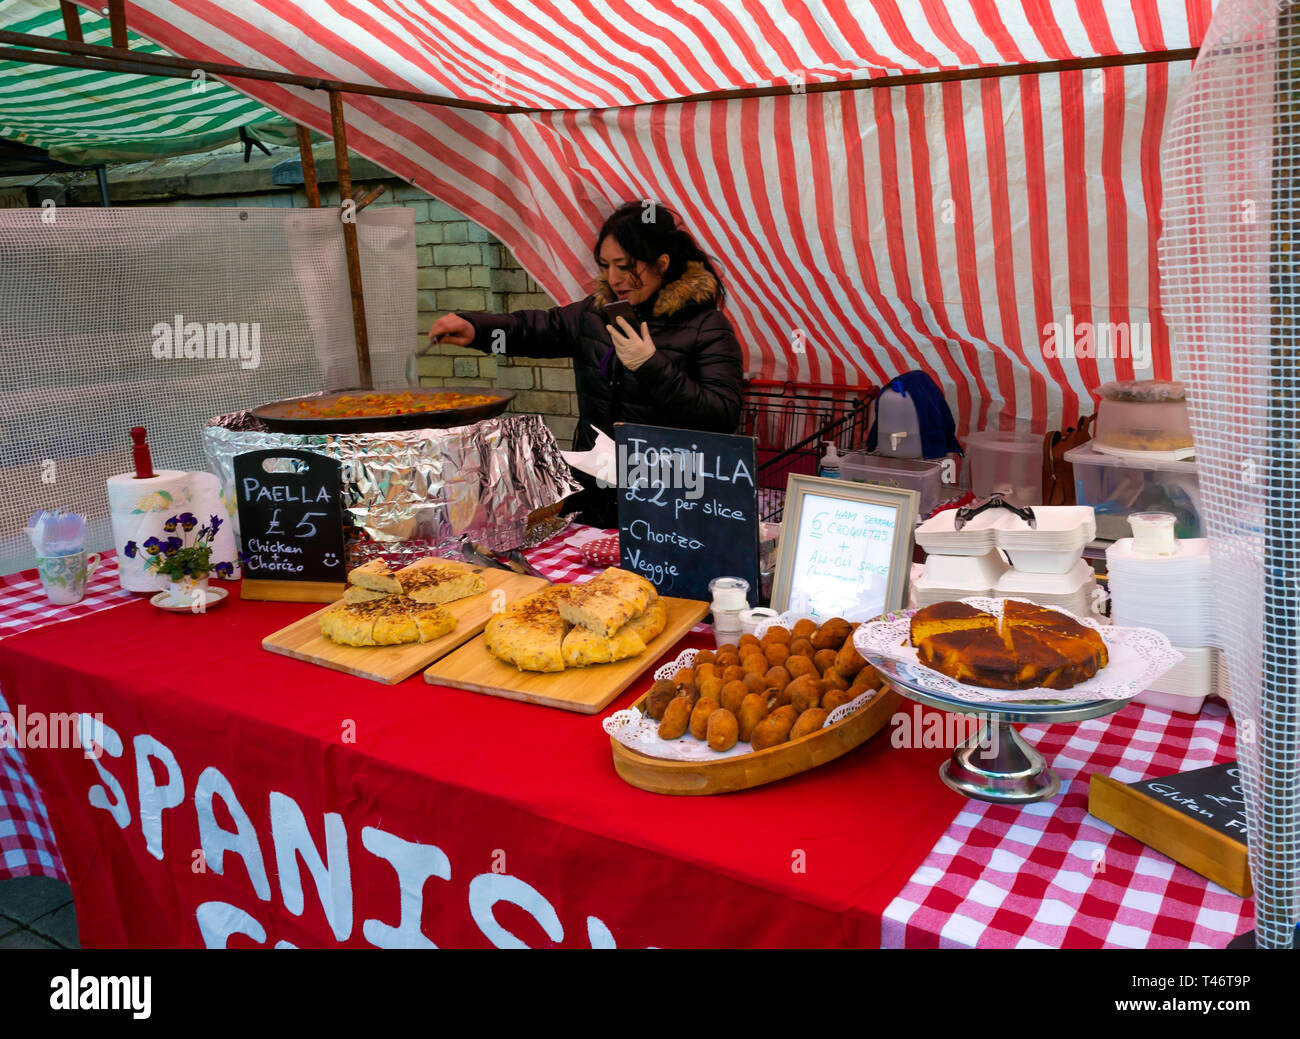 A Spanish woman stall holder at a UK farmer's market displaying food while preparing  steaming hot Paella Stock Photo